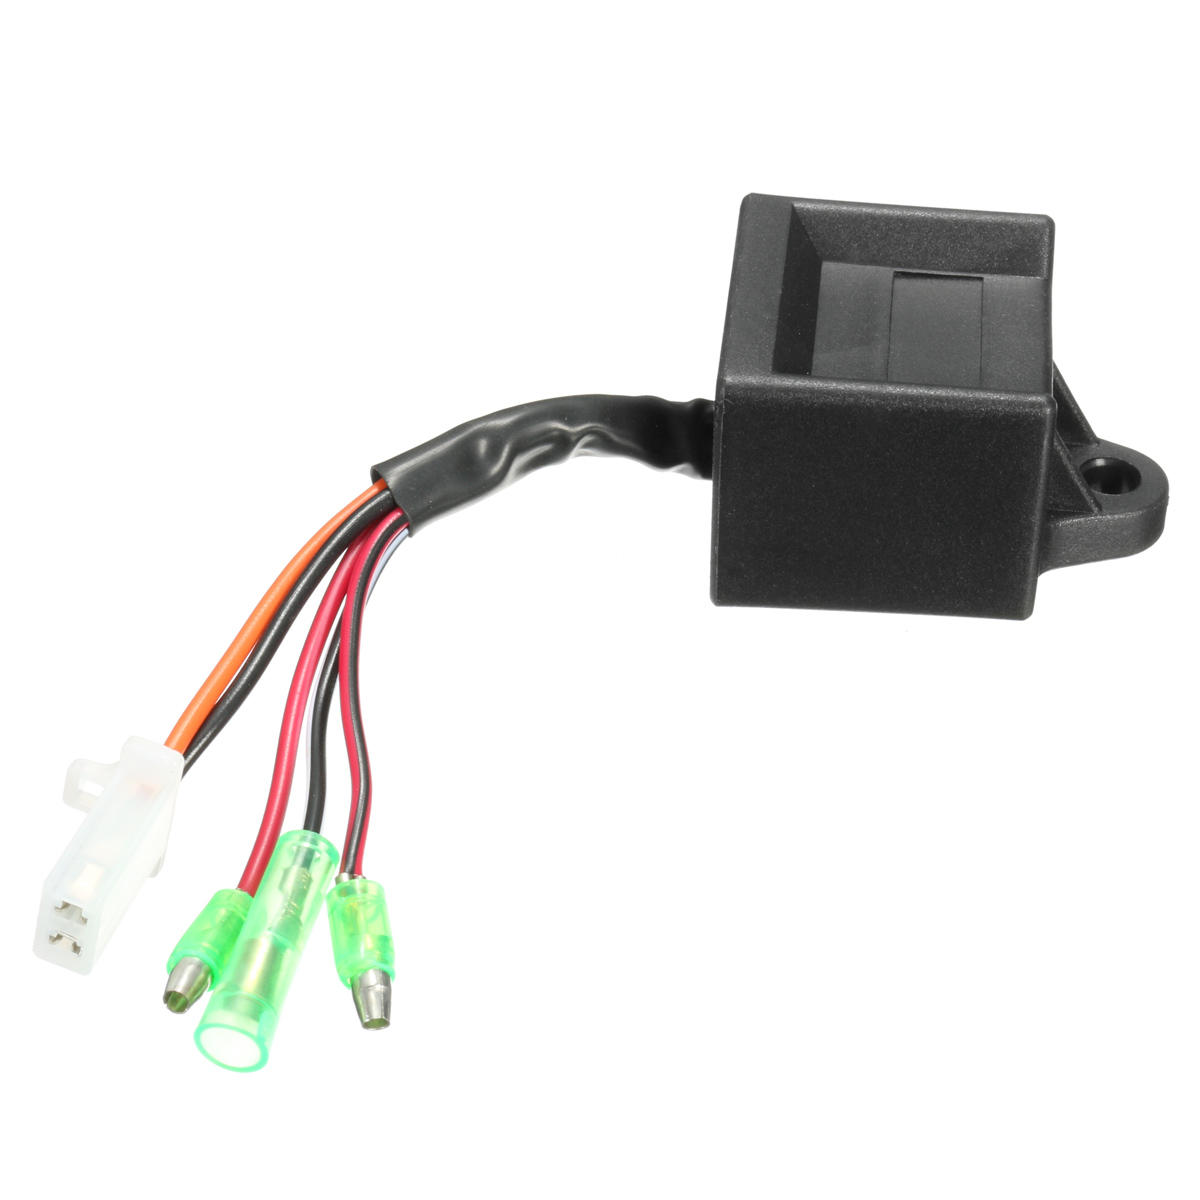 Ignition CDI Box For Polaris Scrambler 50cc 90cc 100cc 110cc 2 Stroke ATV